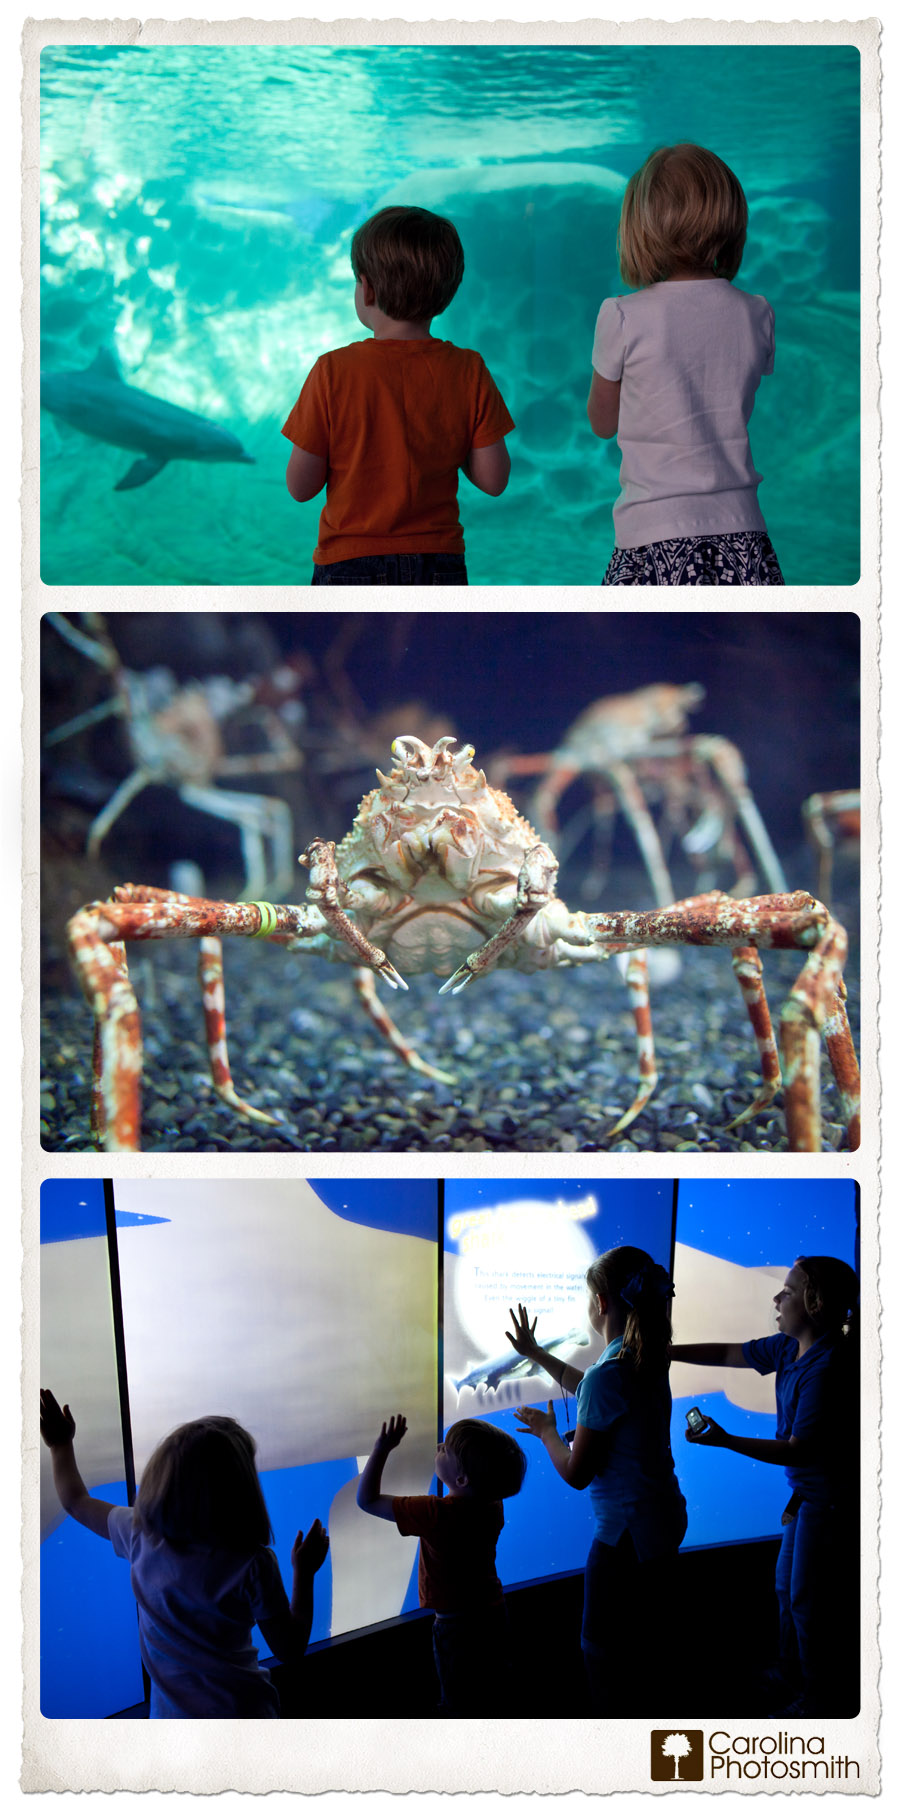 My Children Were Enthralled with Georgia Aquarium's Dolphins, Japanese Spider Crabs and Interactive Exhibits